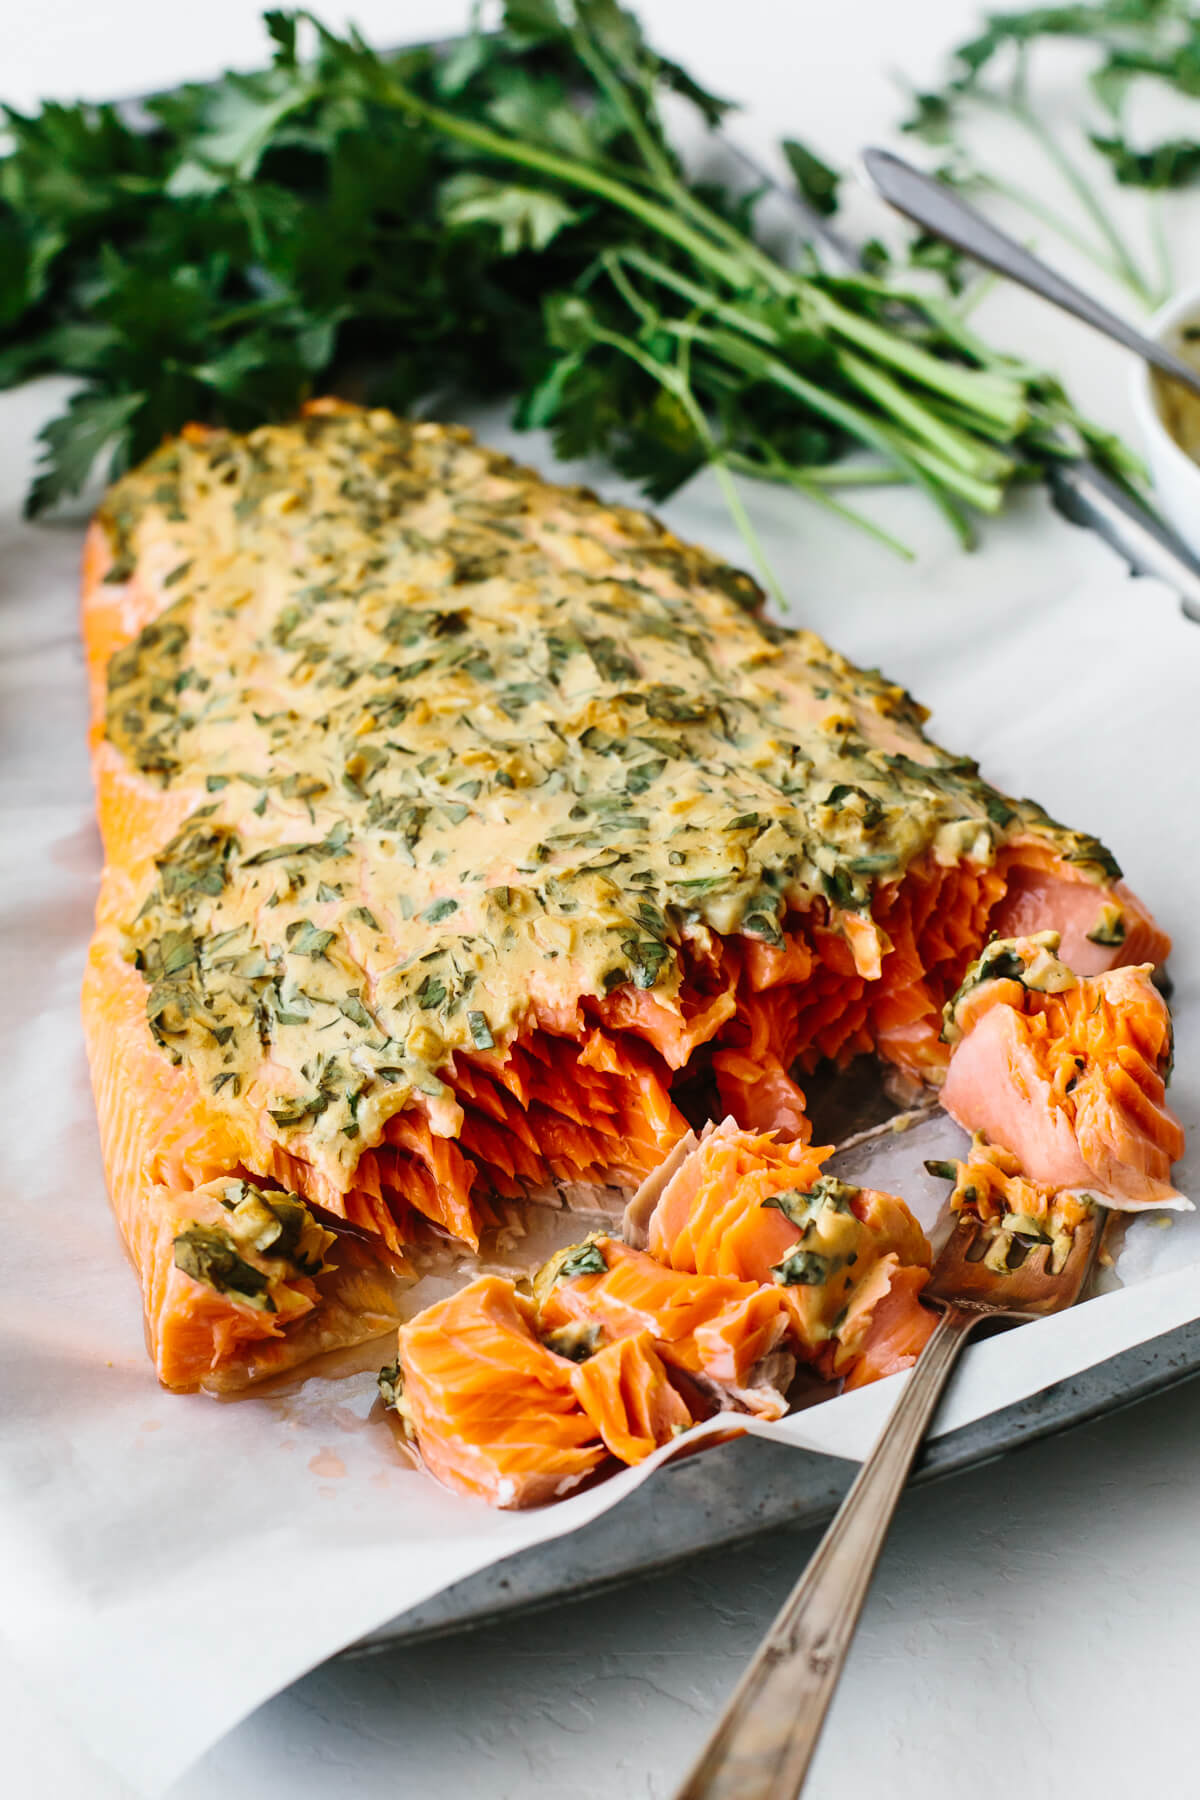 A piece of dijon baked salmon next to parsley.